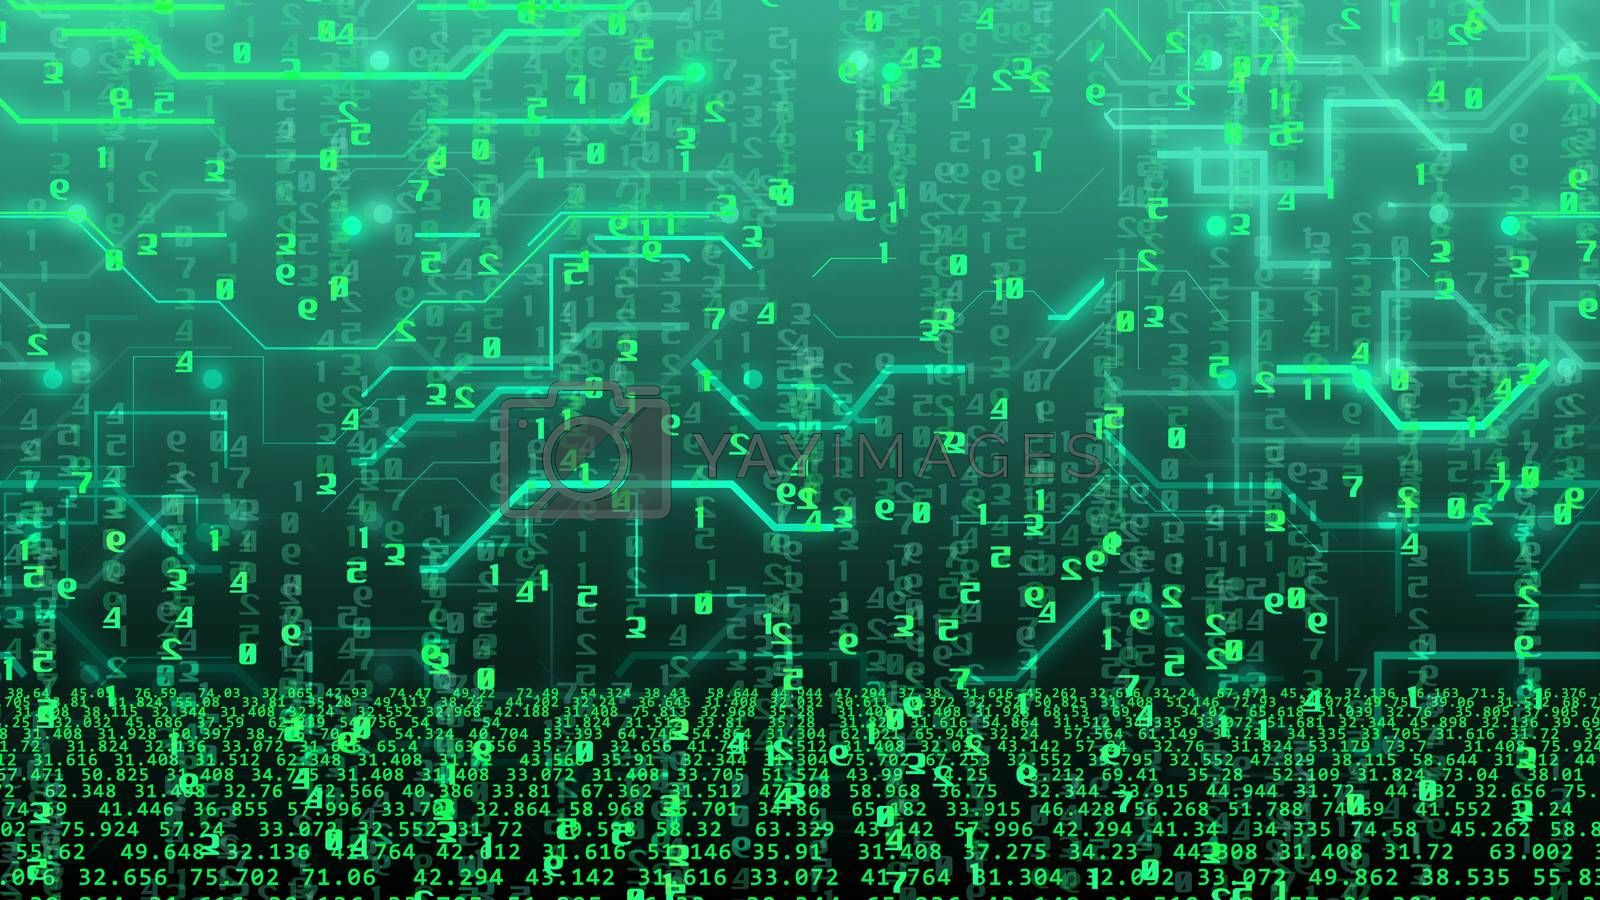 Abstract technology concept with numbers and circuit board imitation on a green background. Internet technology business concept. 3d rendering.